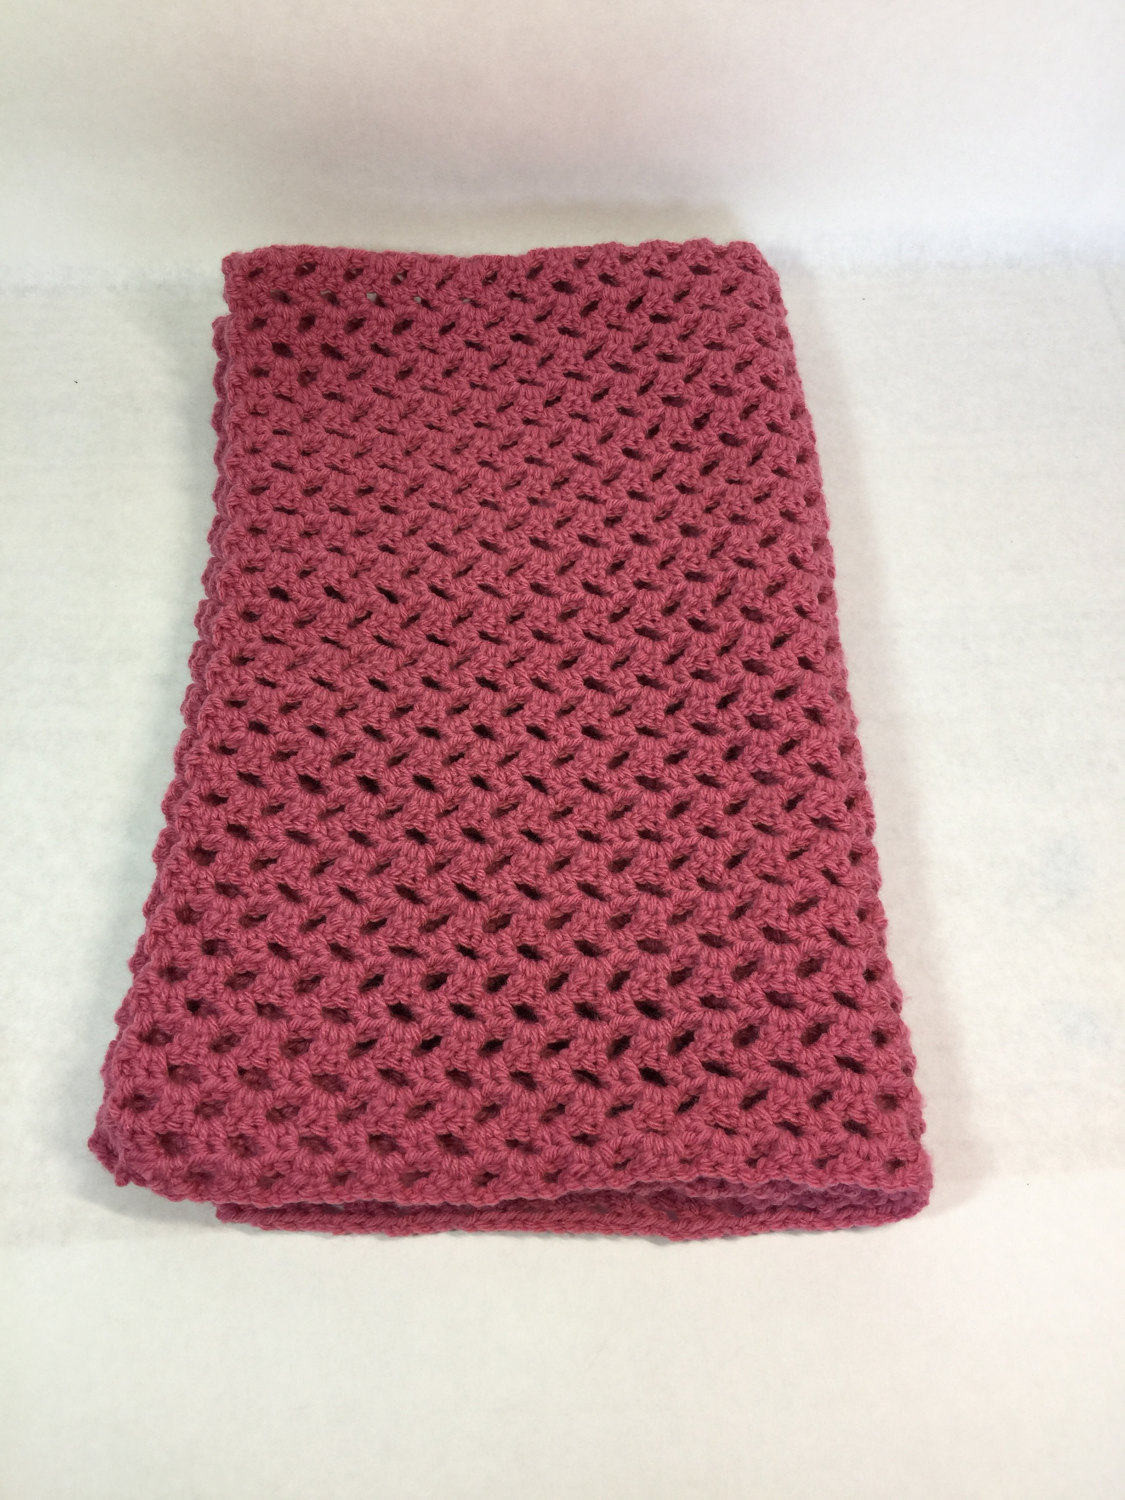 Lap Blanket Wheelchair Throw fice Cover Crocheted Rose